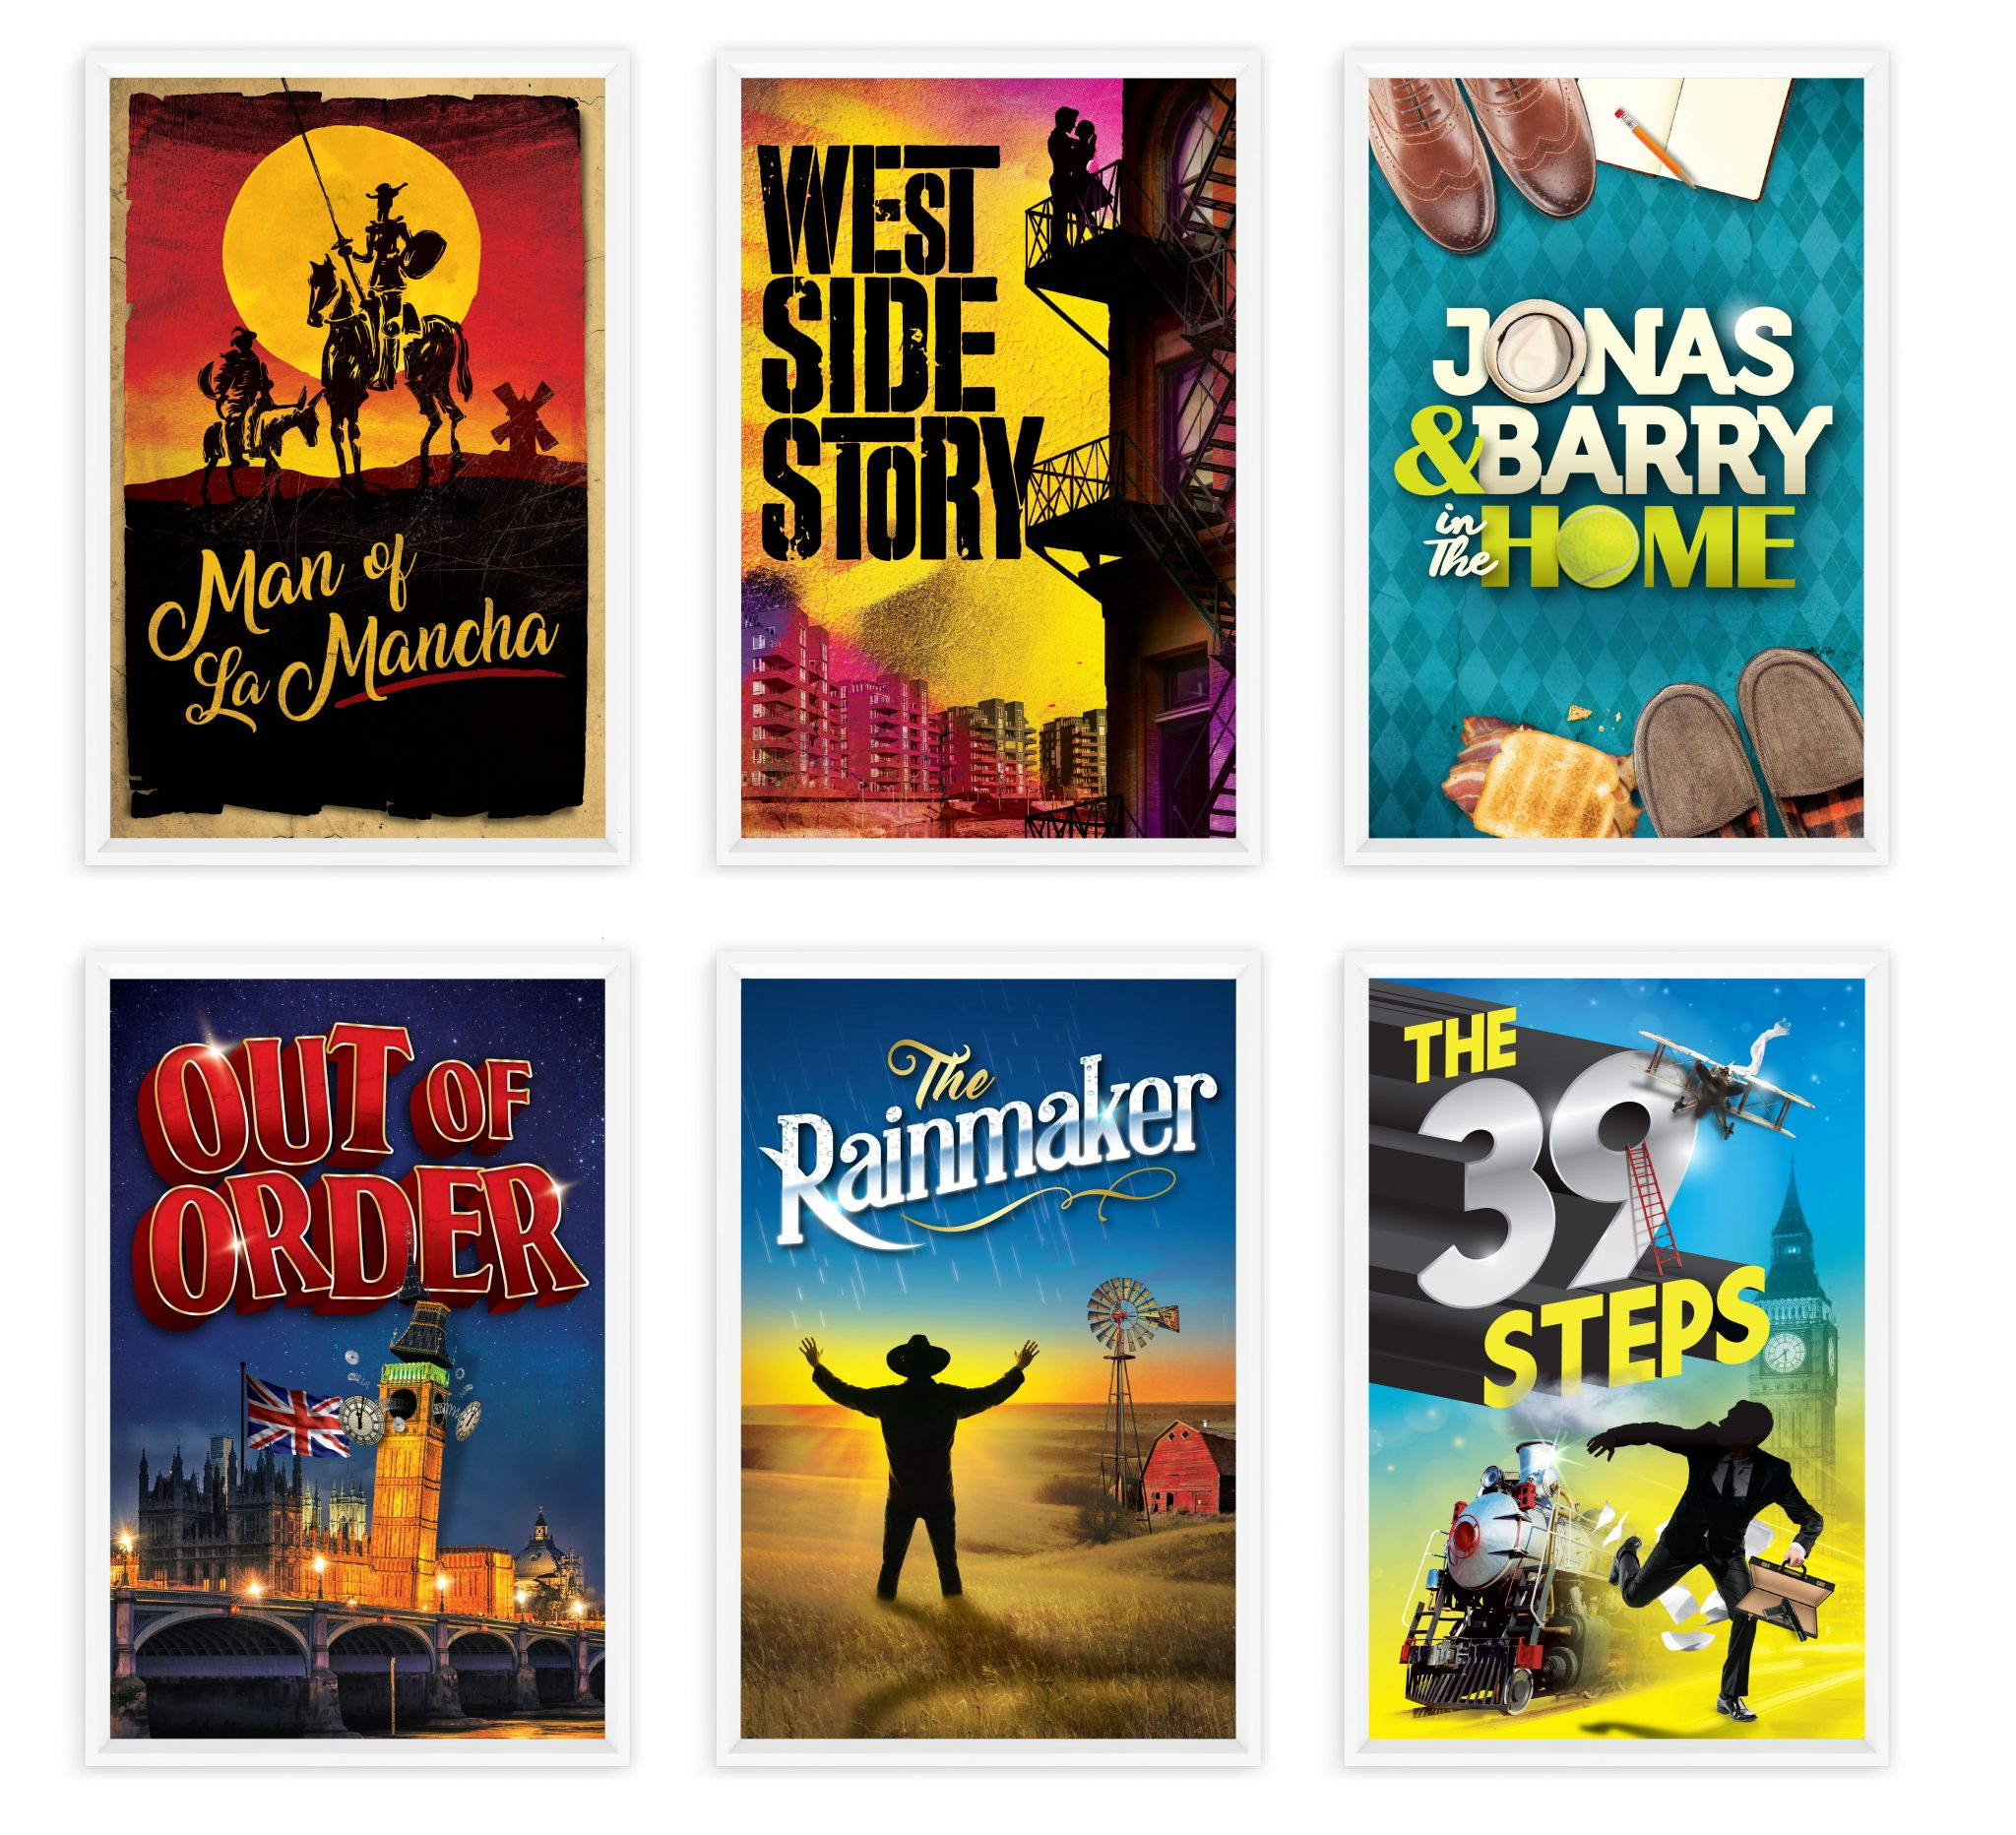 Production posters for Man of La Marcha, West Side Story, Jonas & Barry in the Home, Out of Order, The Rainmaker, and The 39 Steps.